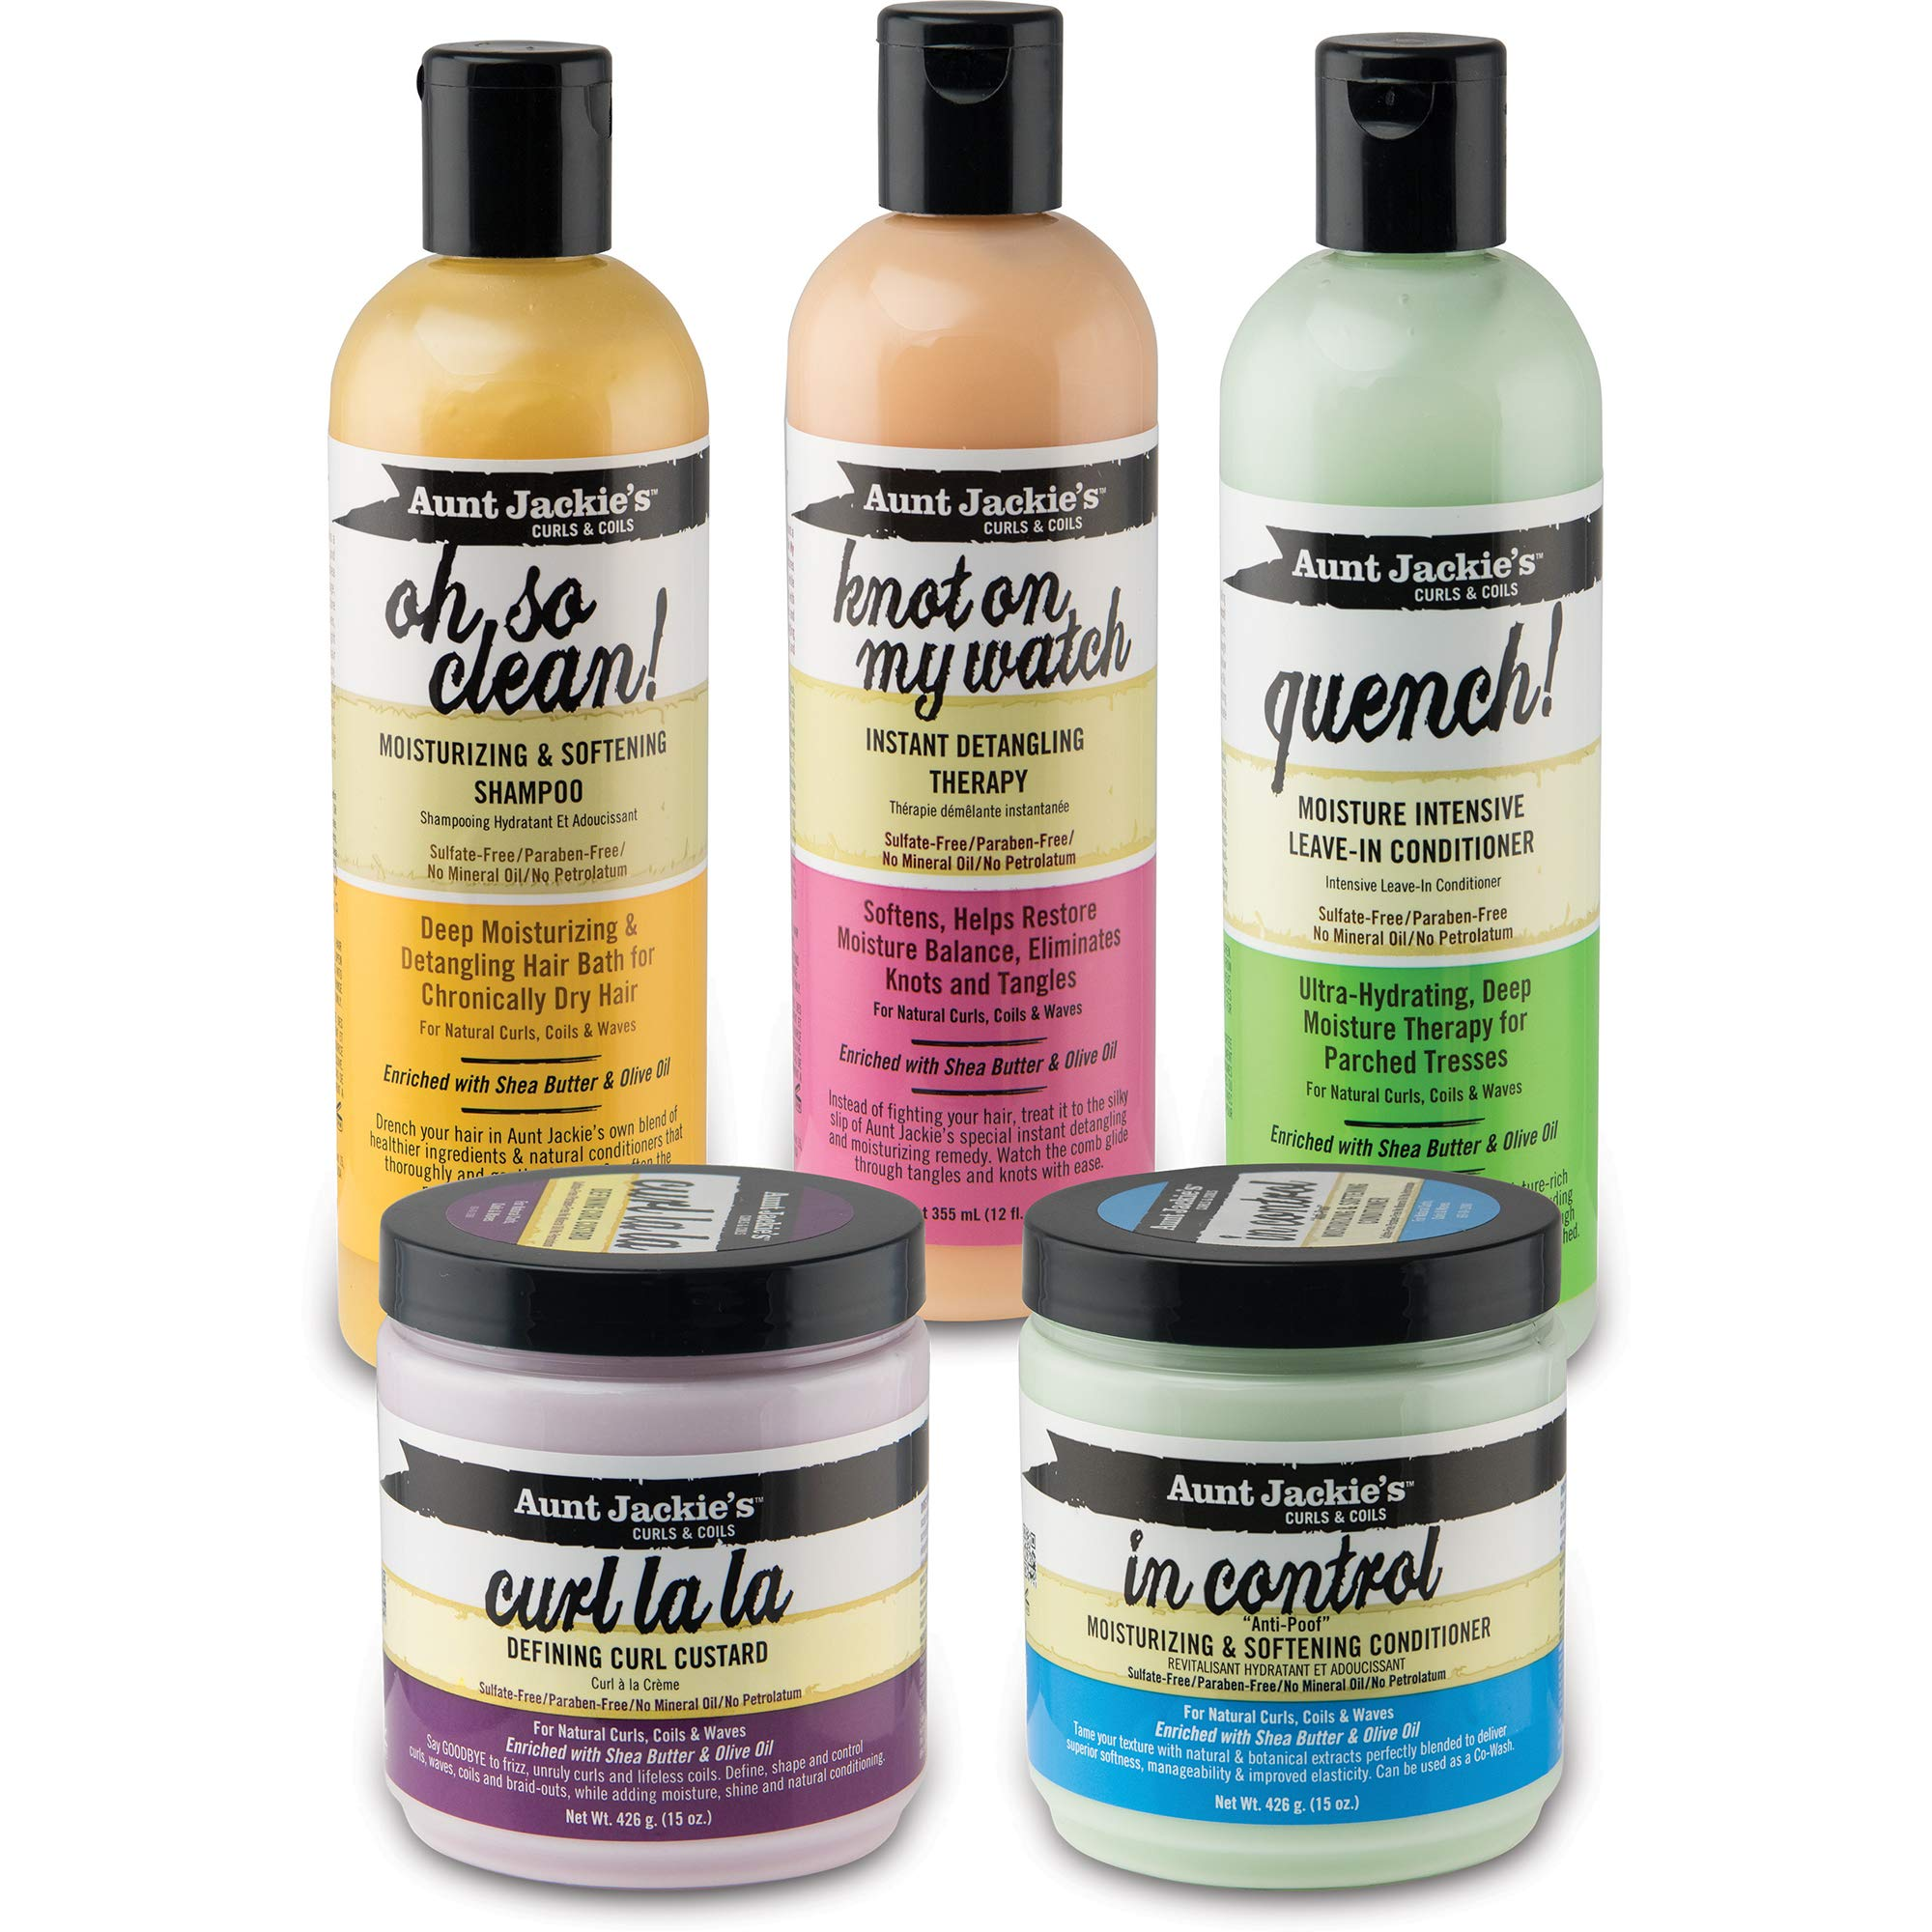 Aunt Jackie's Curl La La, Lightweight Curl Defining Custard, Enriched with Shea Butter & Olive Oil, Basic, 15 Ounce